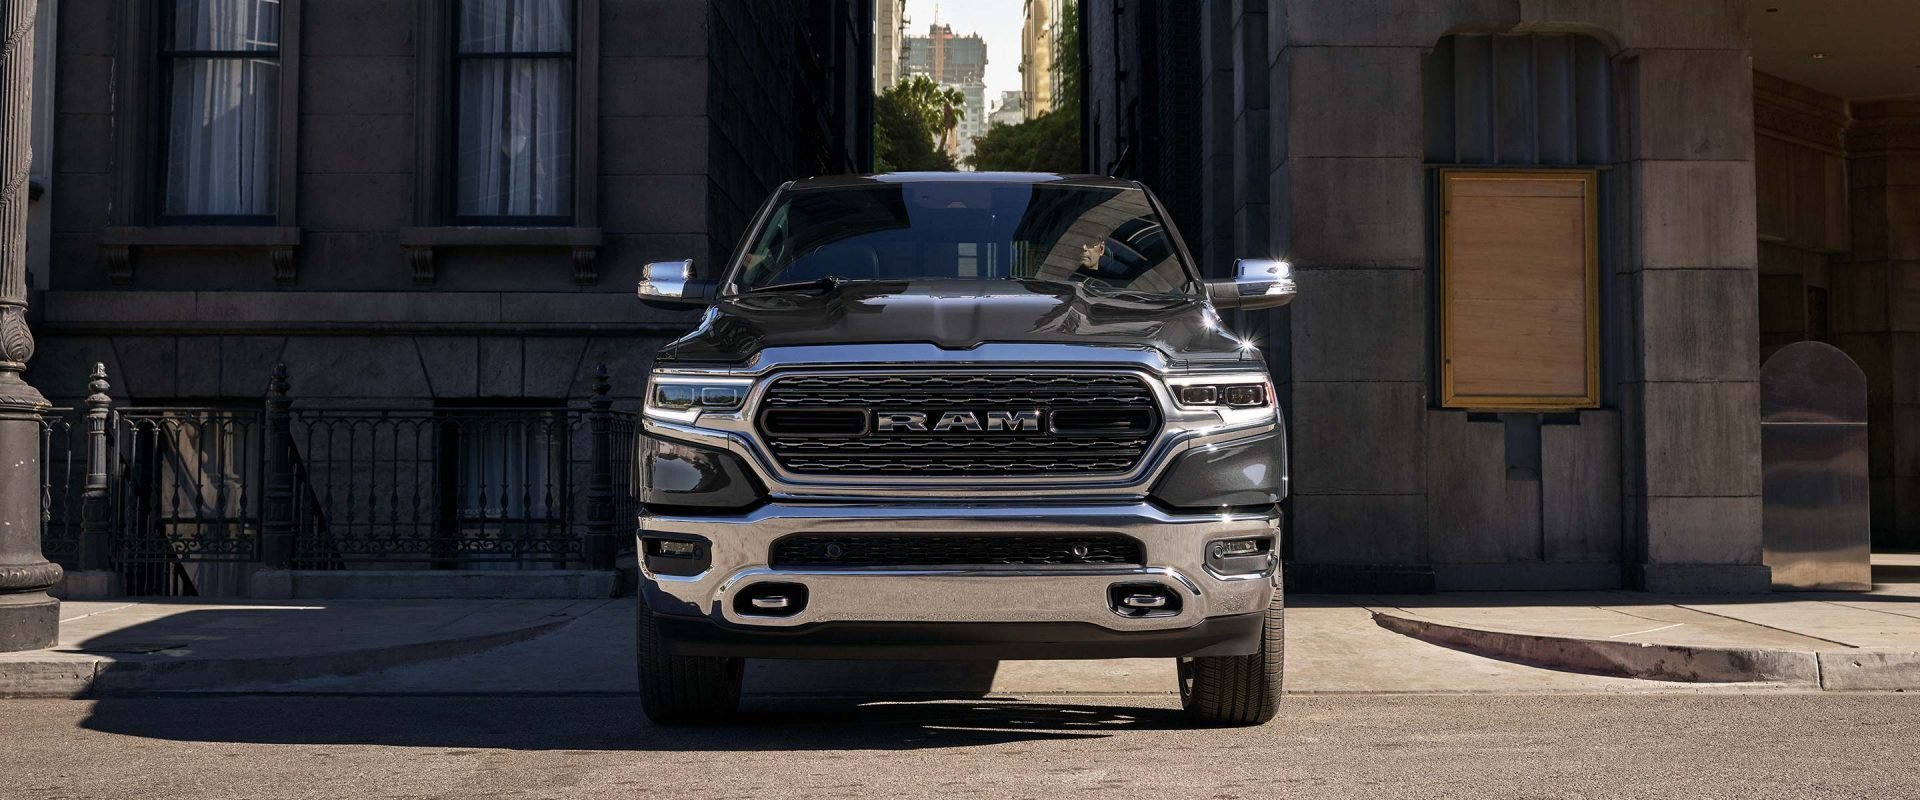 Ram 1500 2019 Exterior Aec Europe 1941 Dodge Truck Tailgate Unmistakably New Undeniably